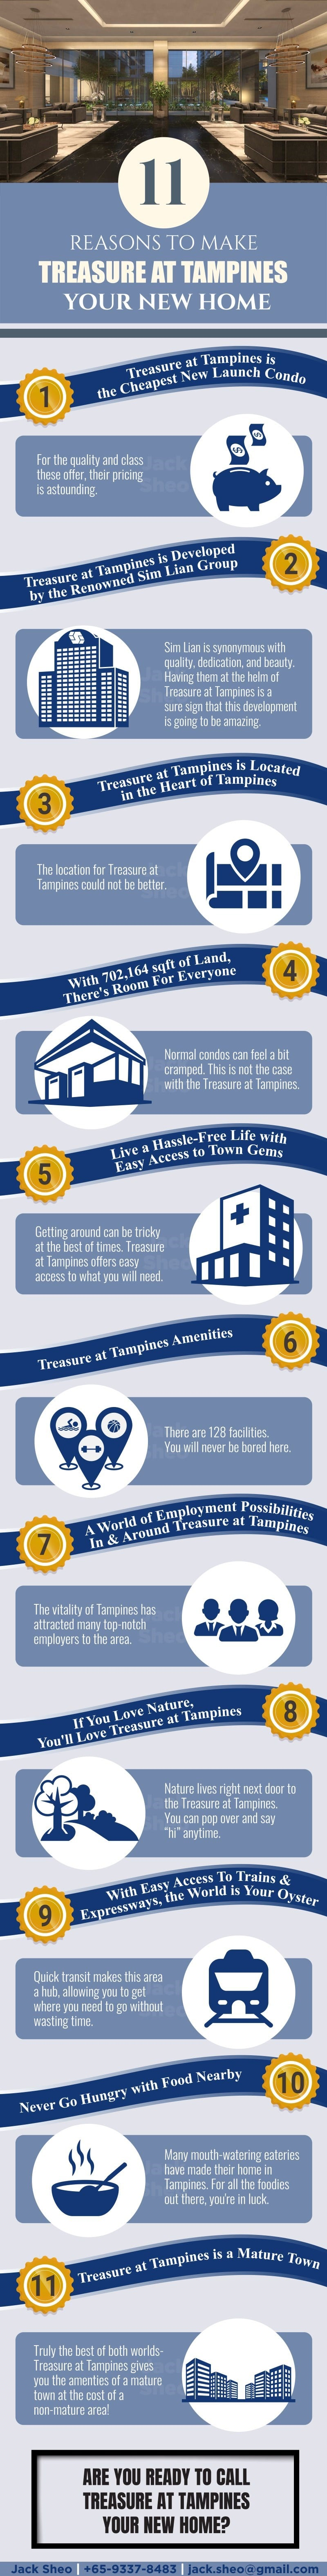 Treasure at Tampines Infographic